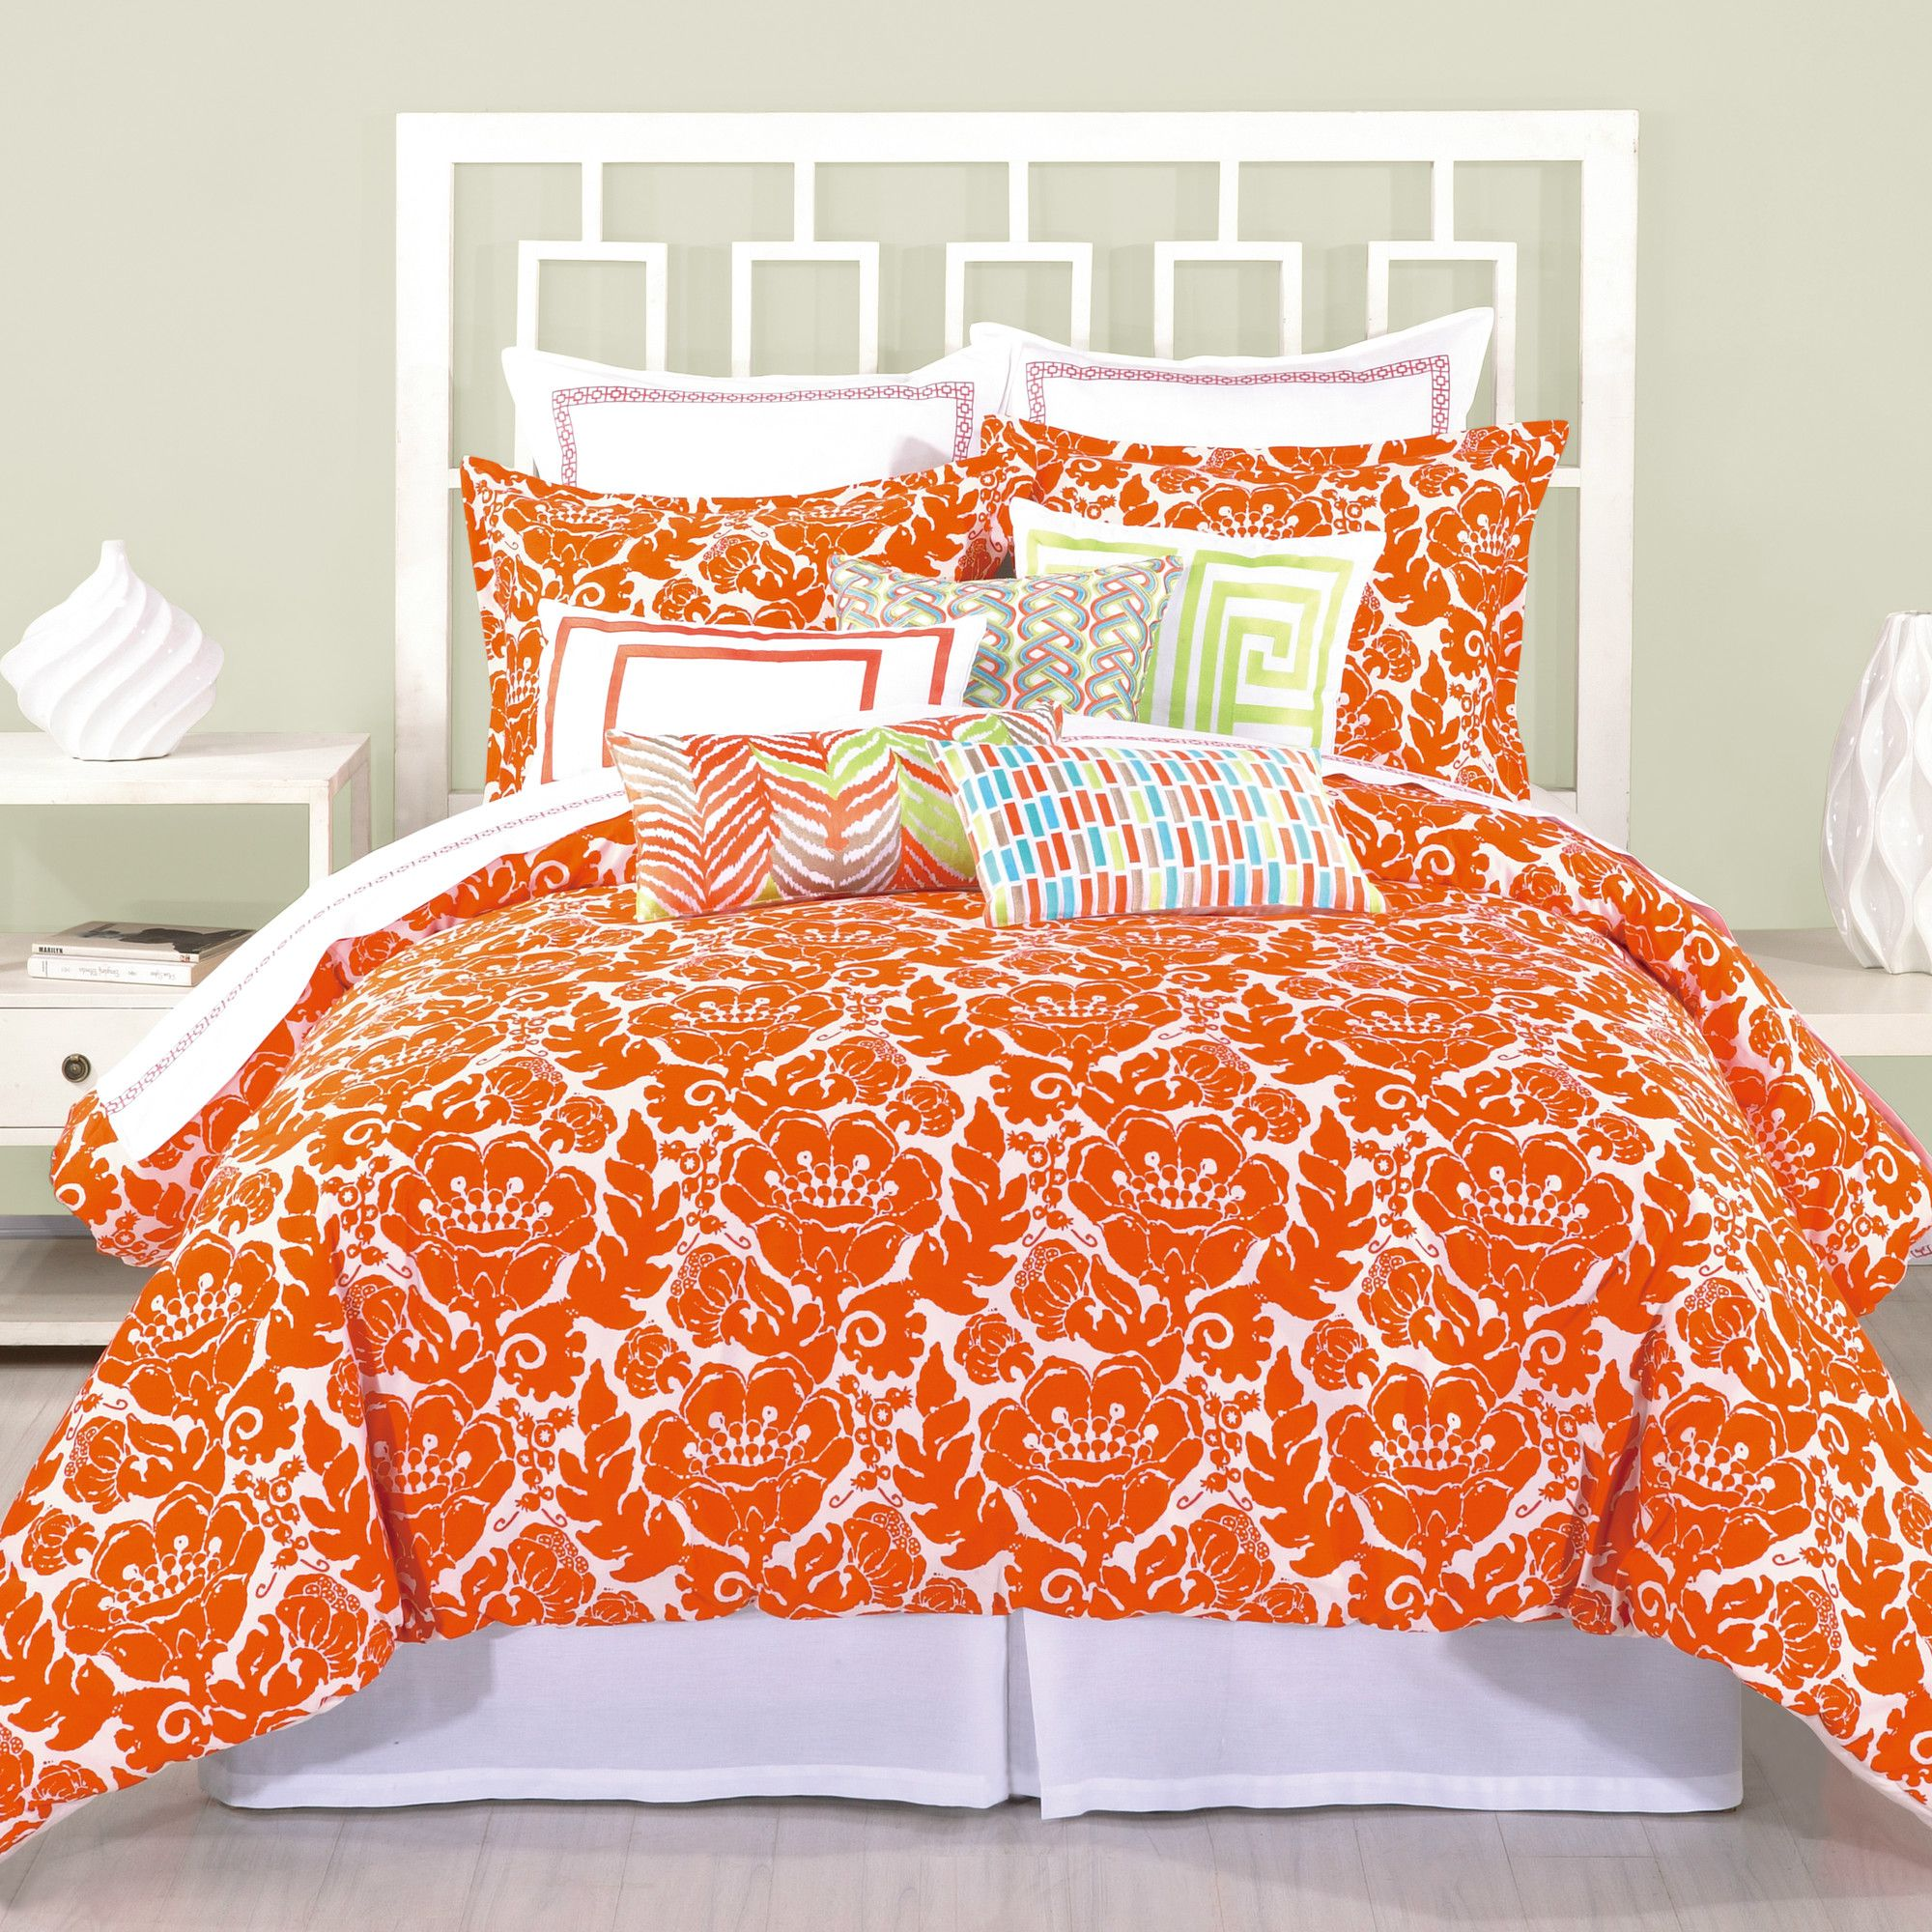 coral navy comforter large full duvet orange bedding ikat in cover designs and blue damask king set sets deny